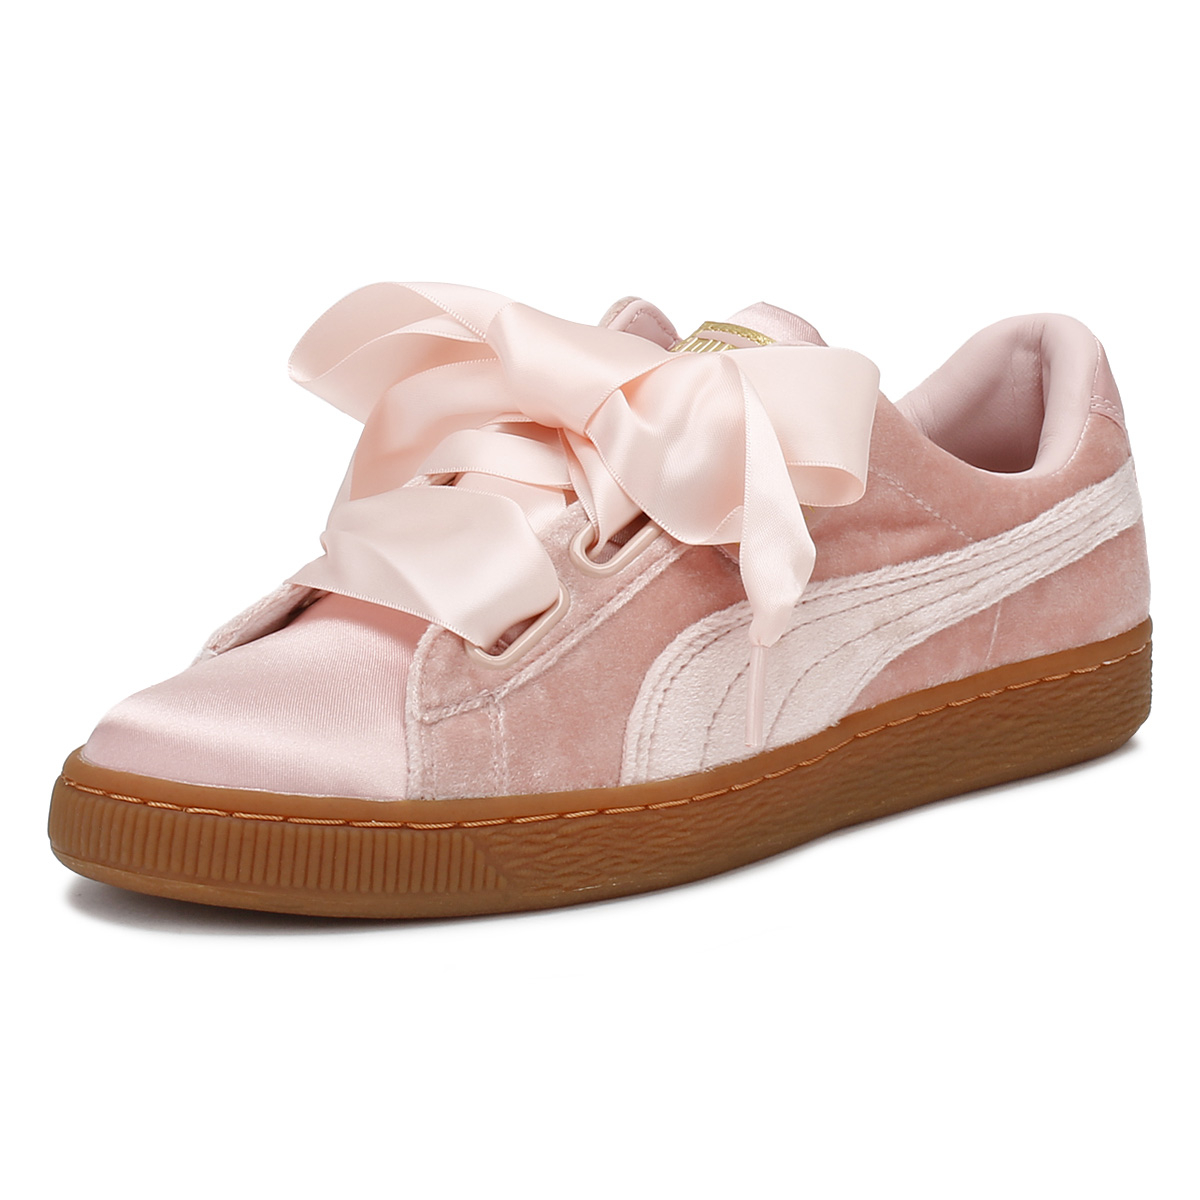 the latest f94eb d46a4 Details about PUMA Womens Pink Trainers Gum Velvet Basket Heart Sport  Casual Ladies Shoes